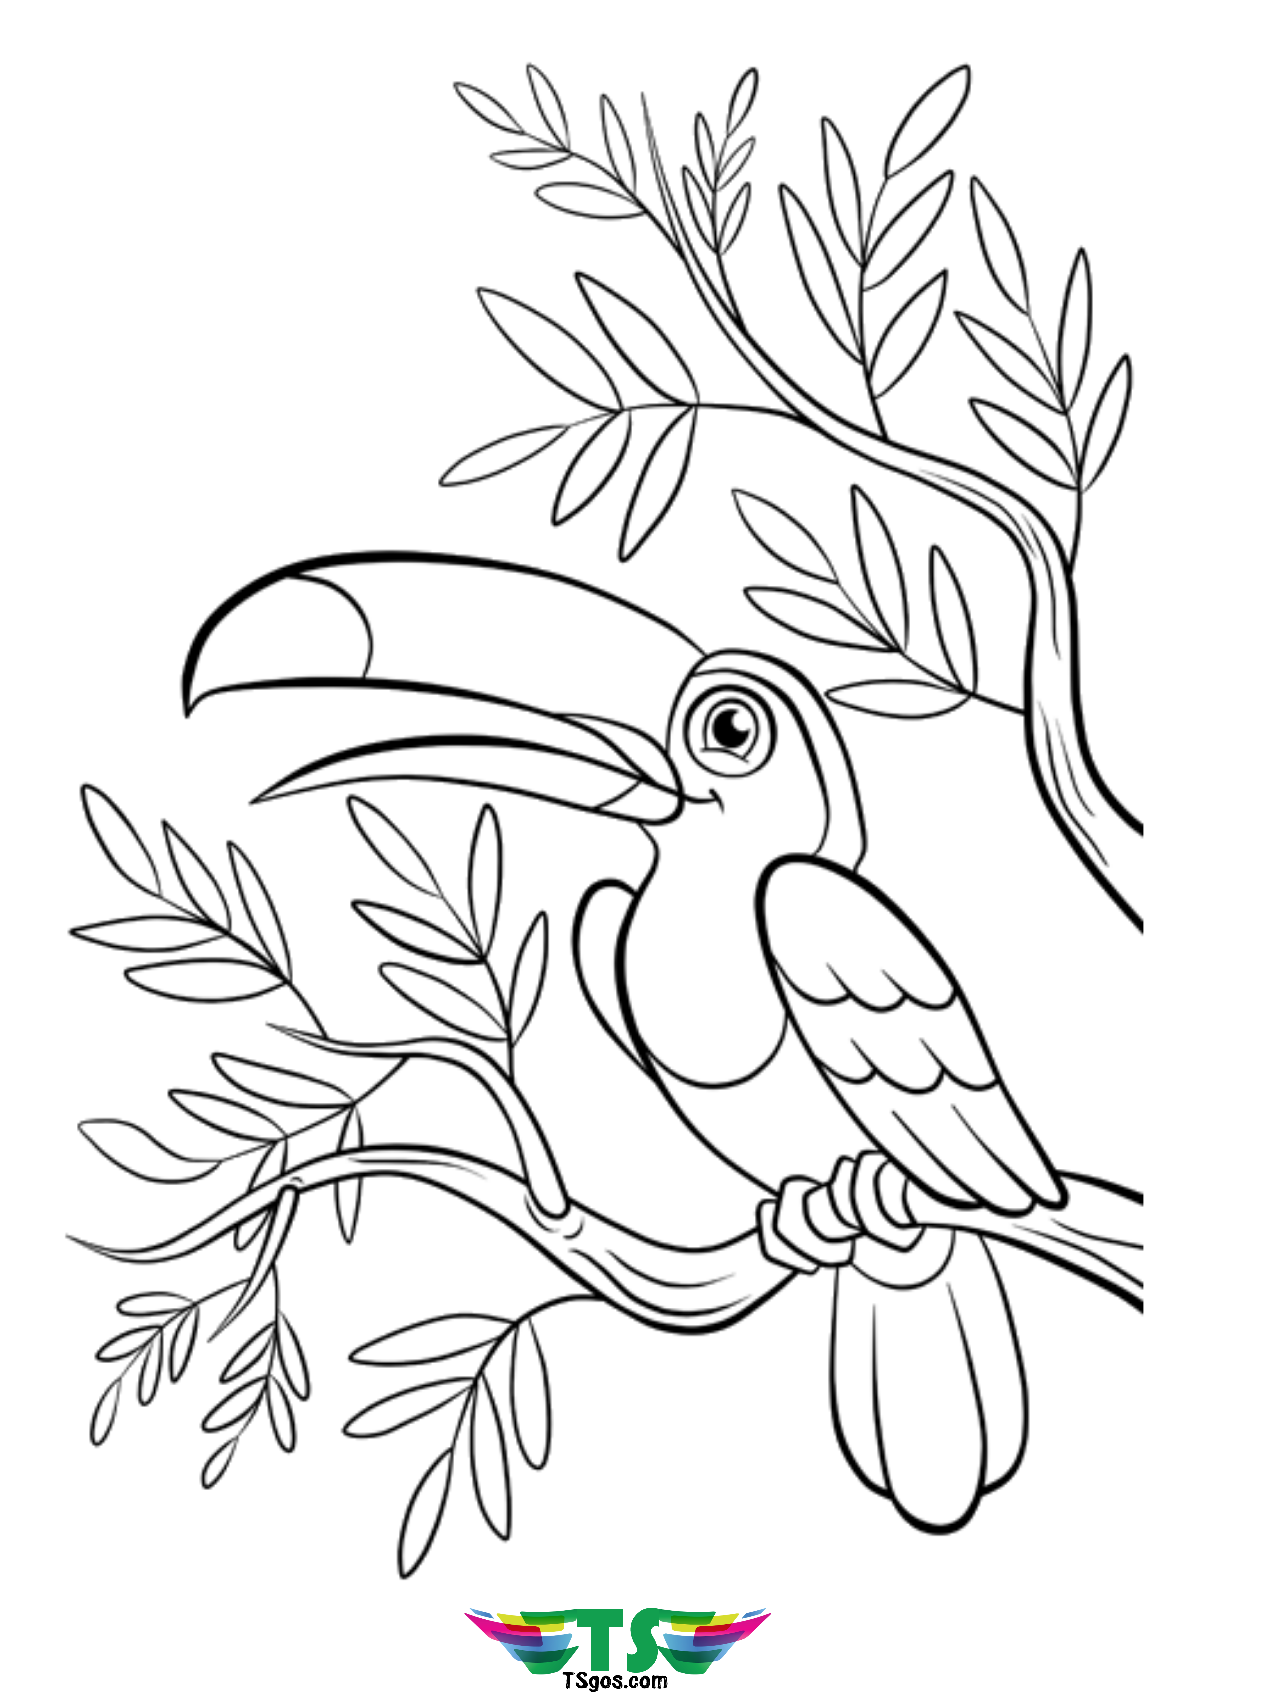 coloring bird for kids beautiful bird coloring page free download tsgoscom kids coloring for bird